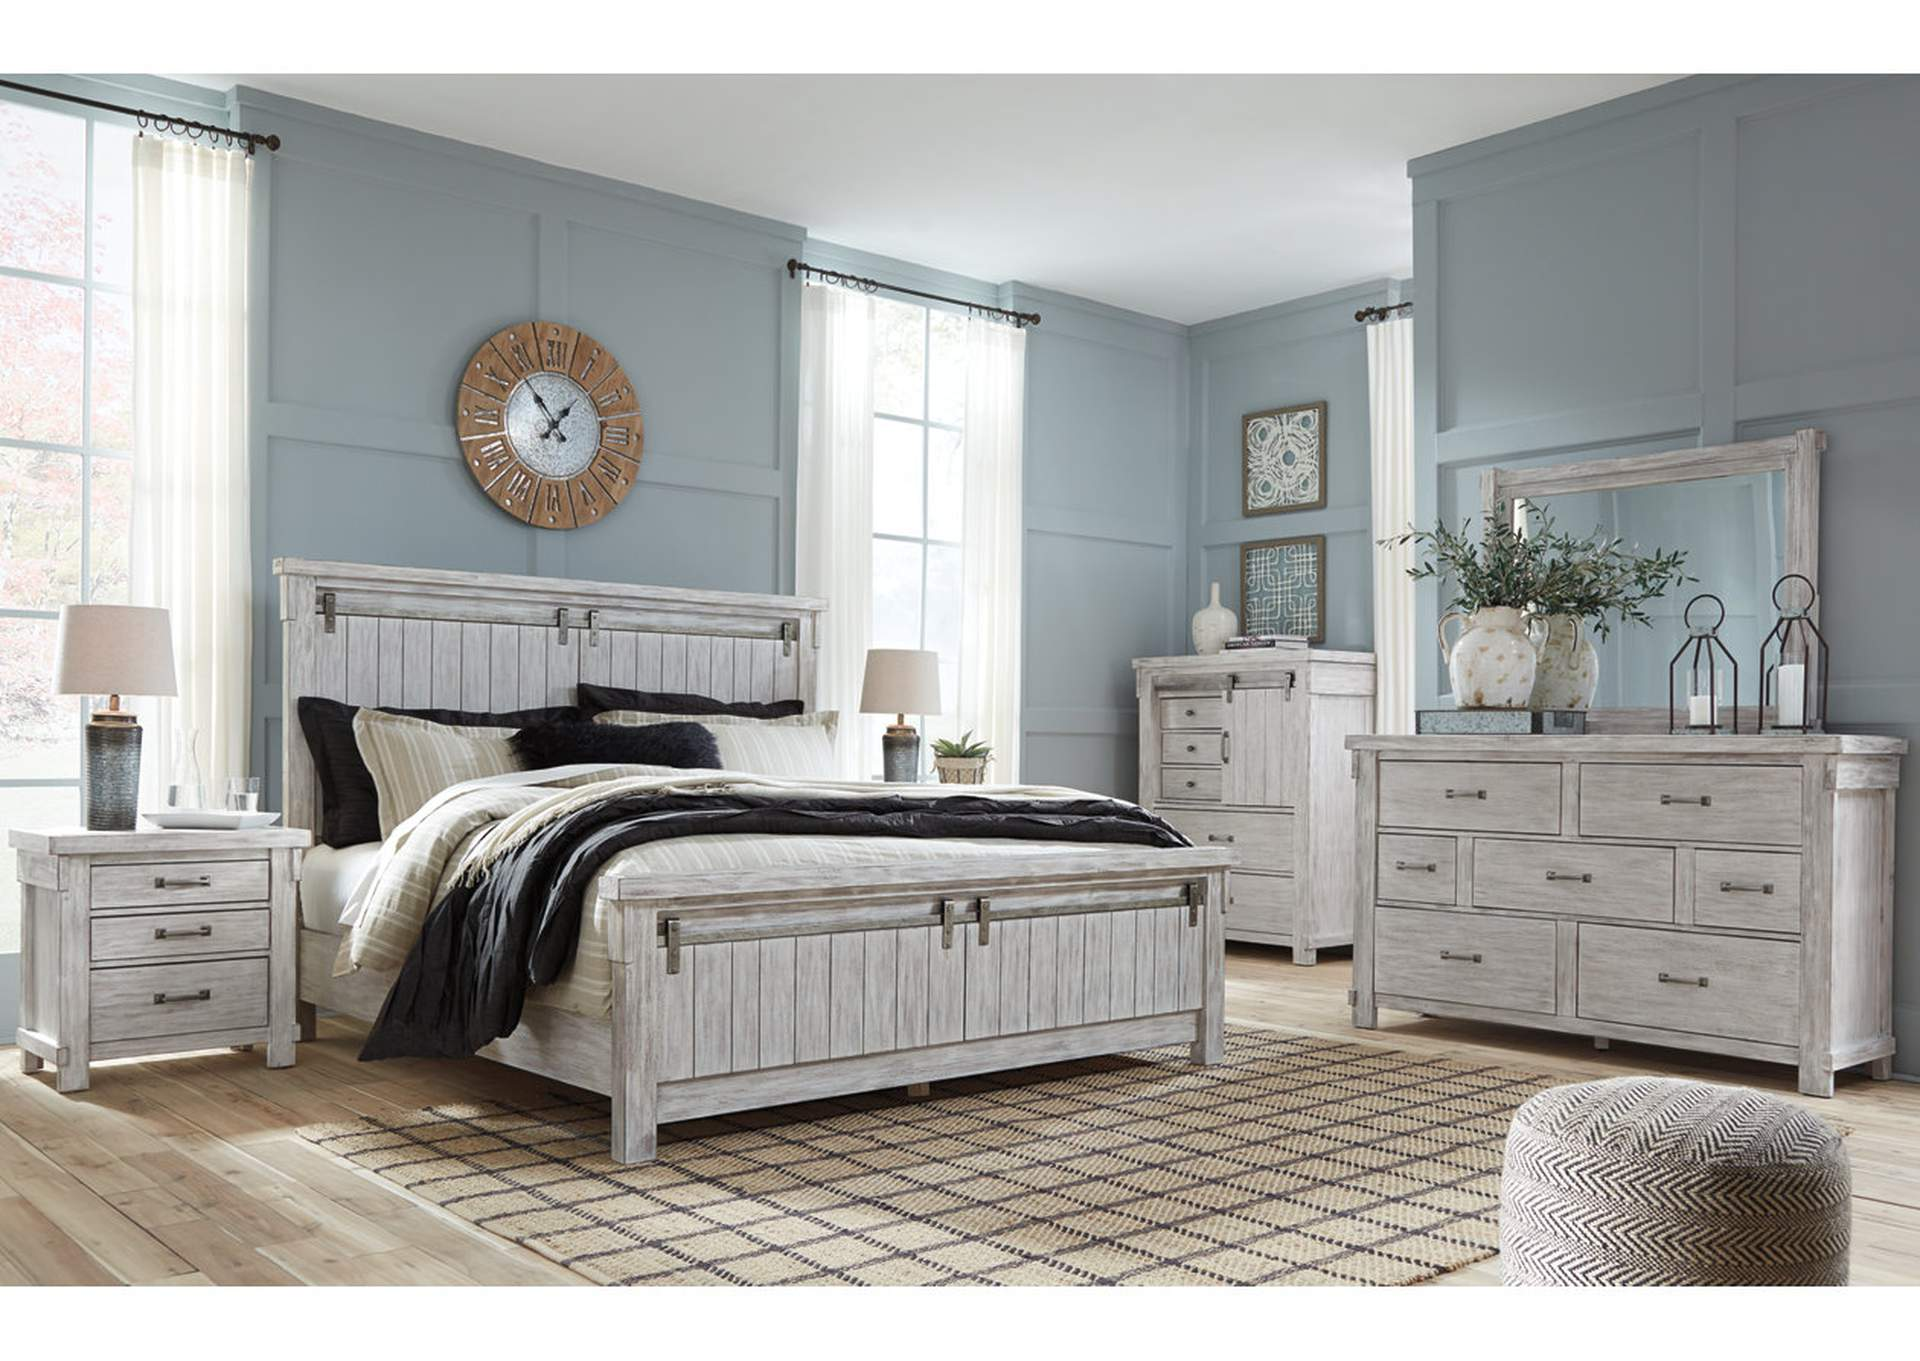 Brashland King Panel Bed w/Dresser and Mirror,Signature Design By Ashley